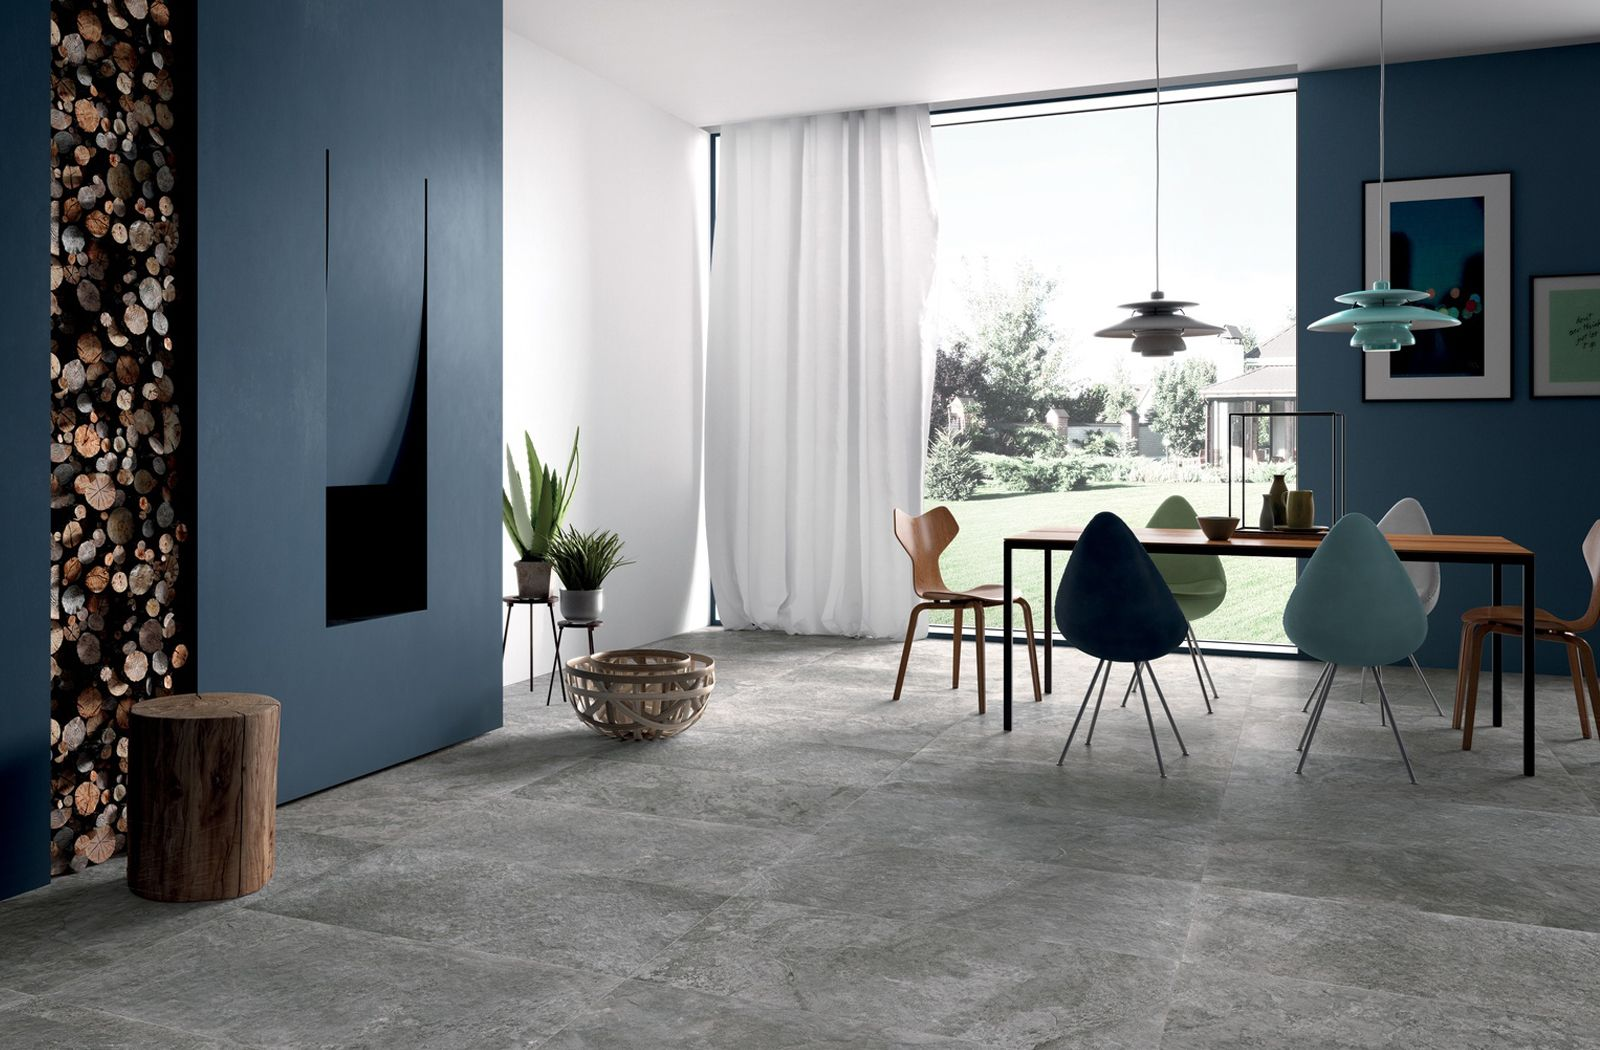 Scandinavian Charm Blue And Grey Dining Area Concept With Grey Floor Tiles From Richetti Group S Blackboard Tile Collecti Tiles Grey Floor Tiles Grey Flooring